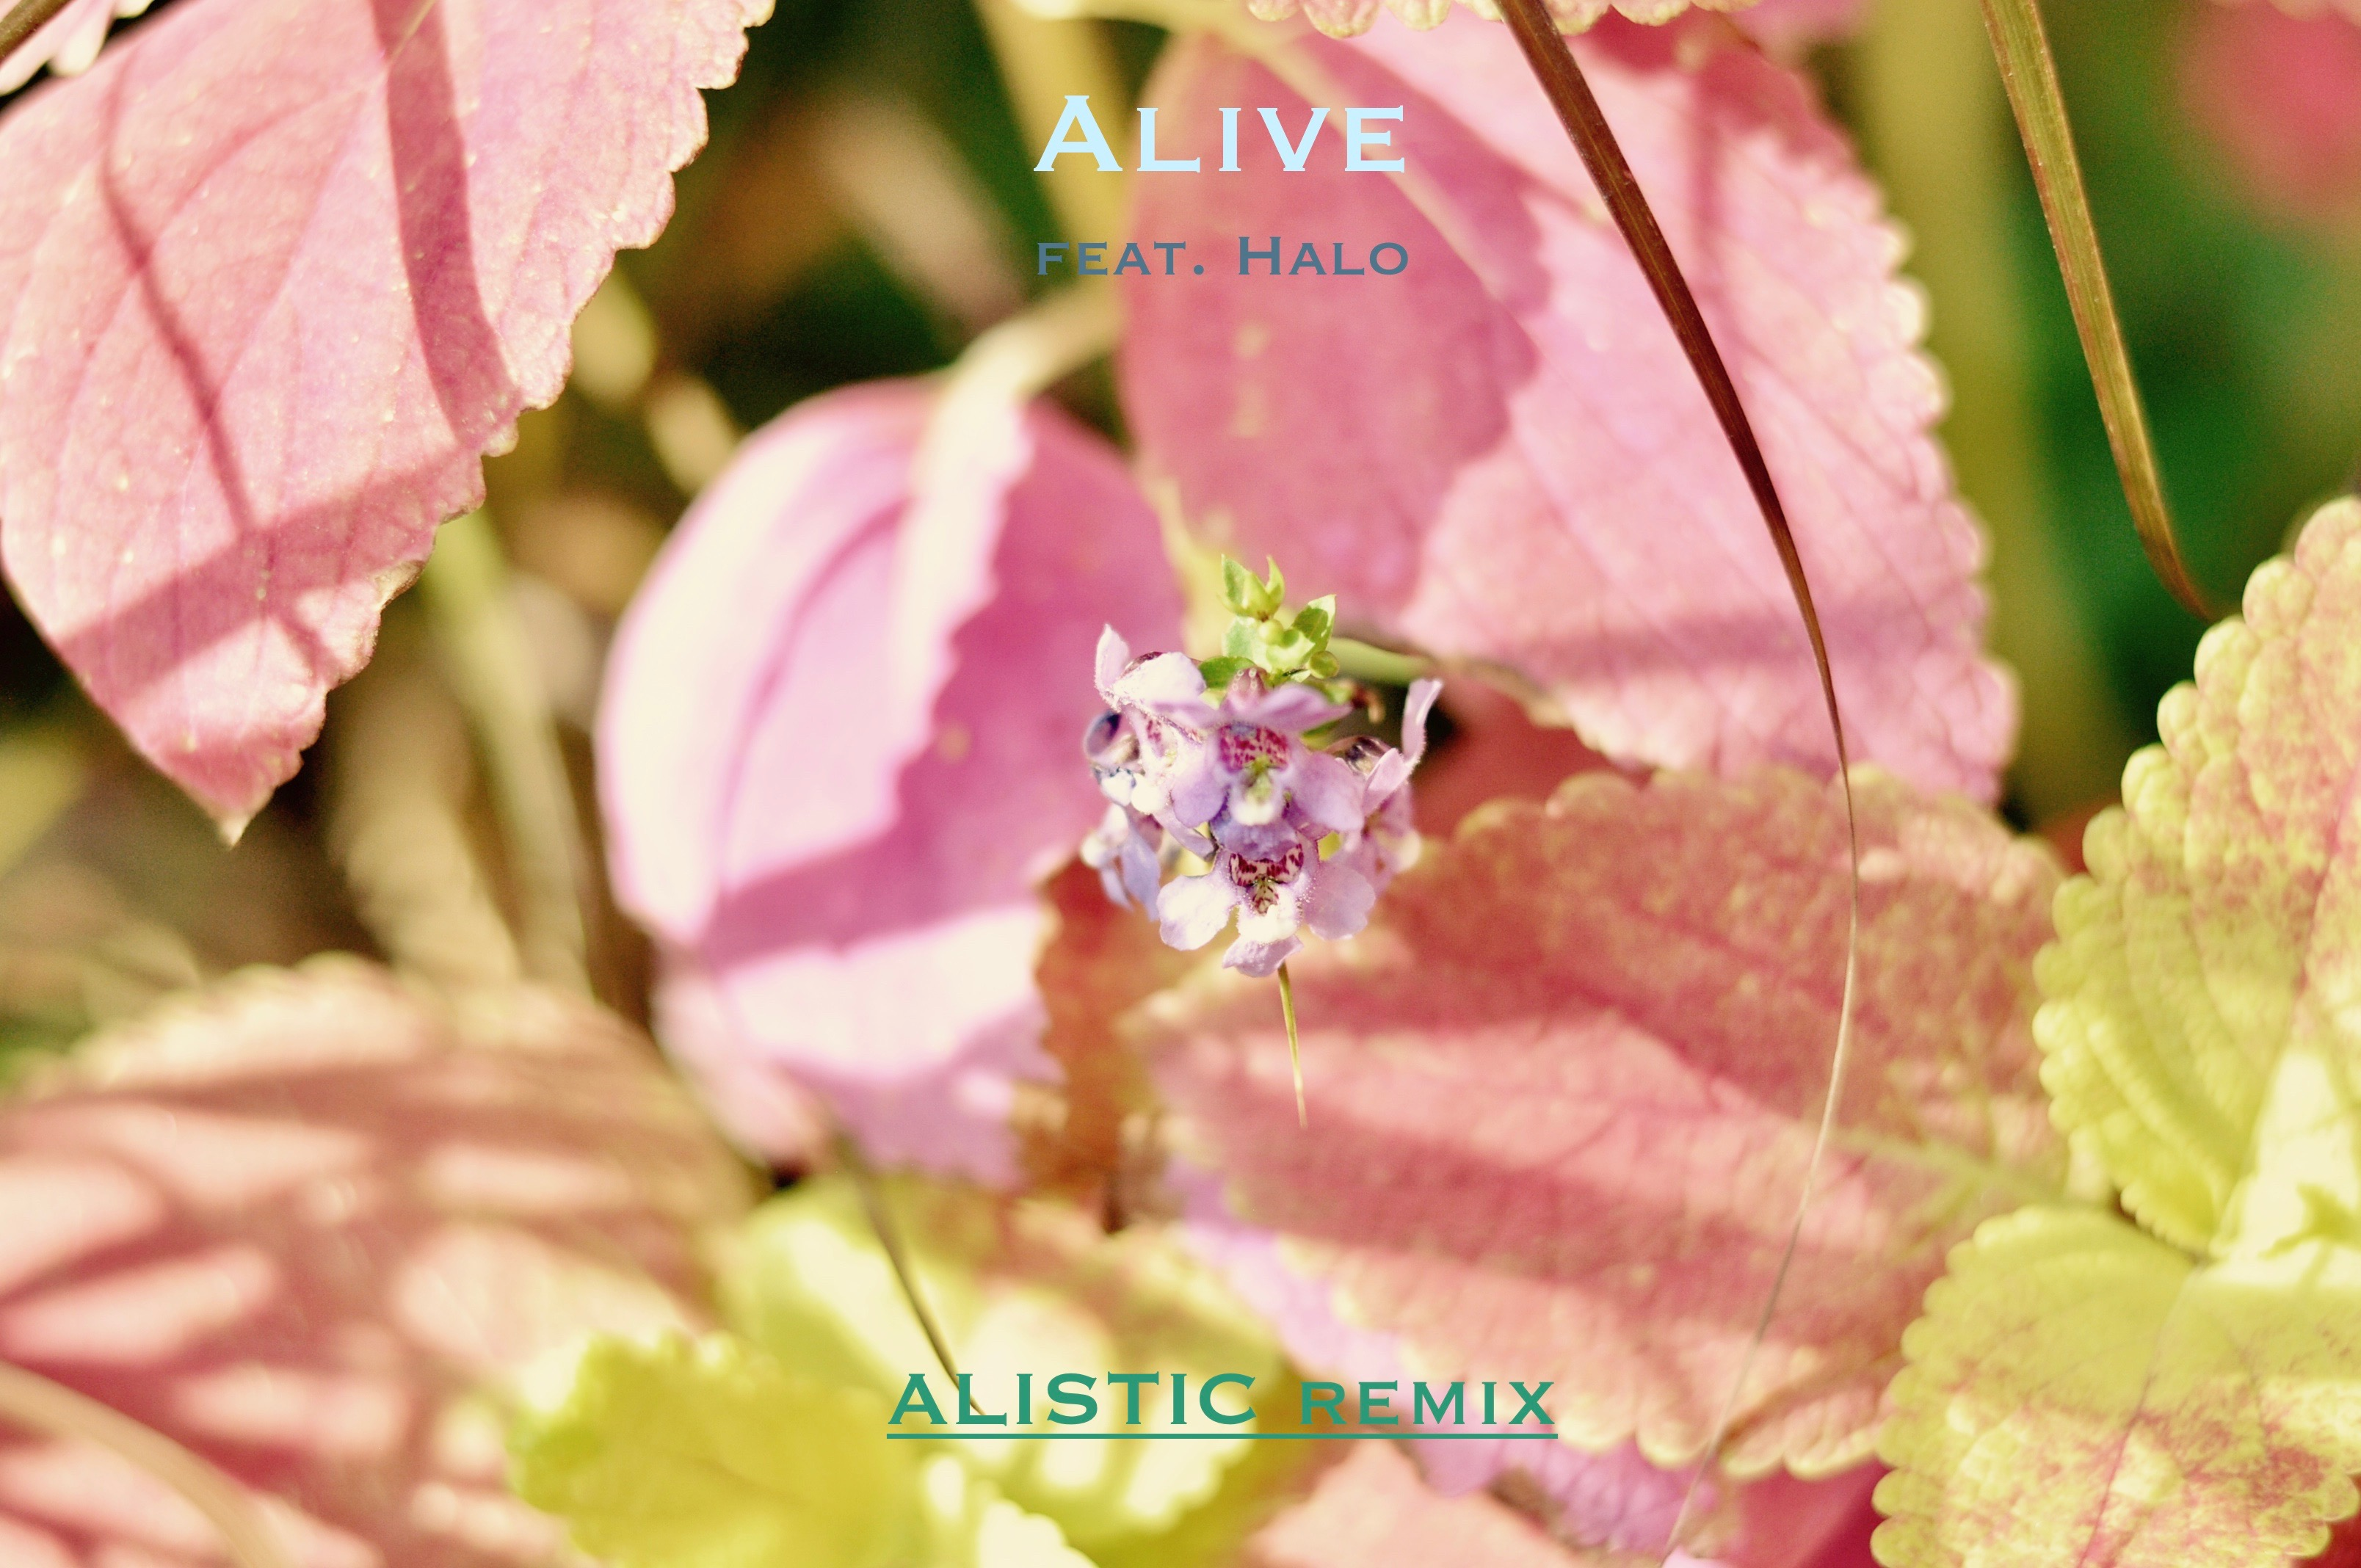 6431548_151152839151_Alivecover.jpg